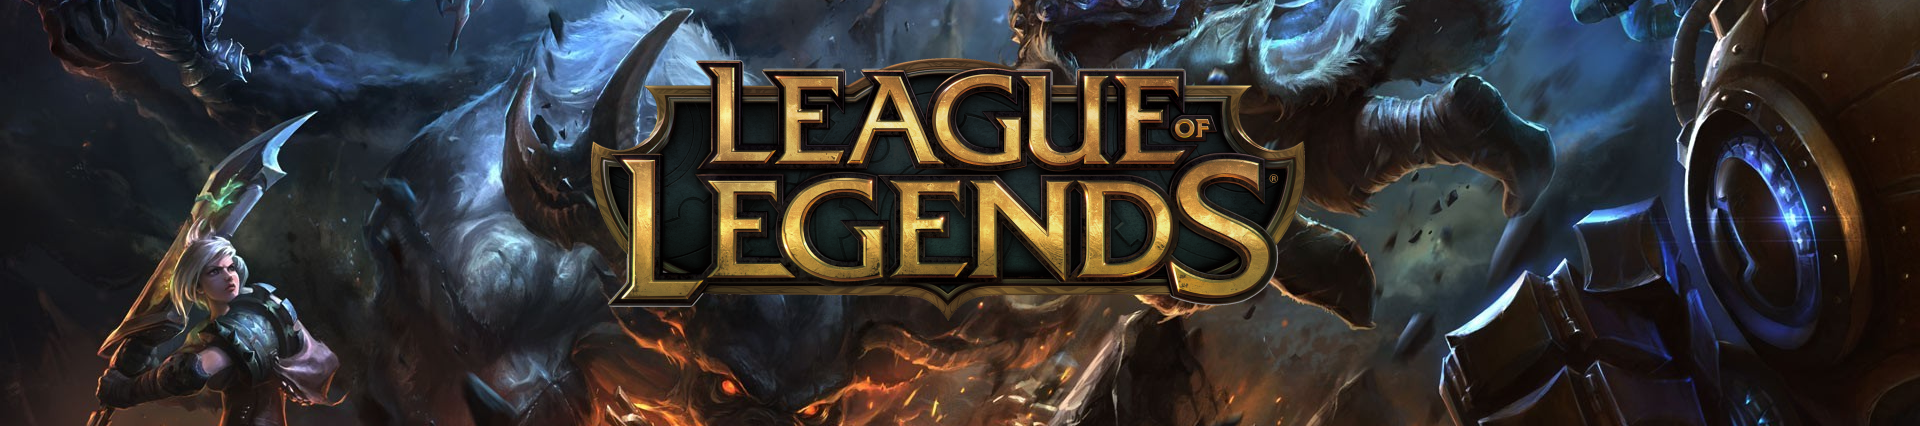 League_of_Legends_banner.png#asset:389